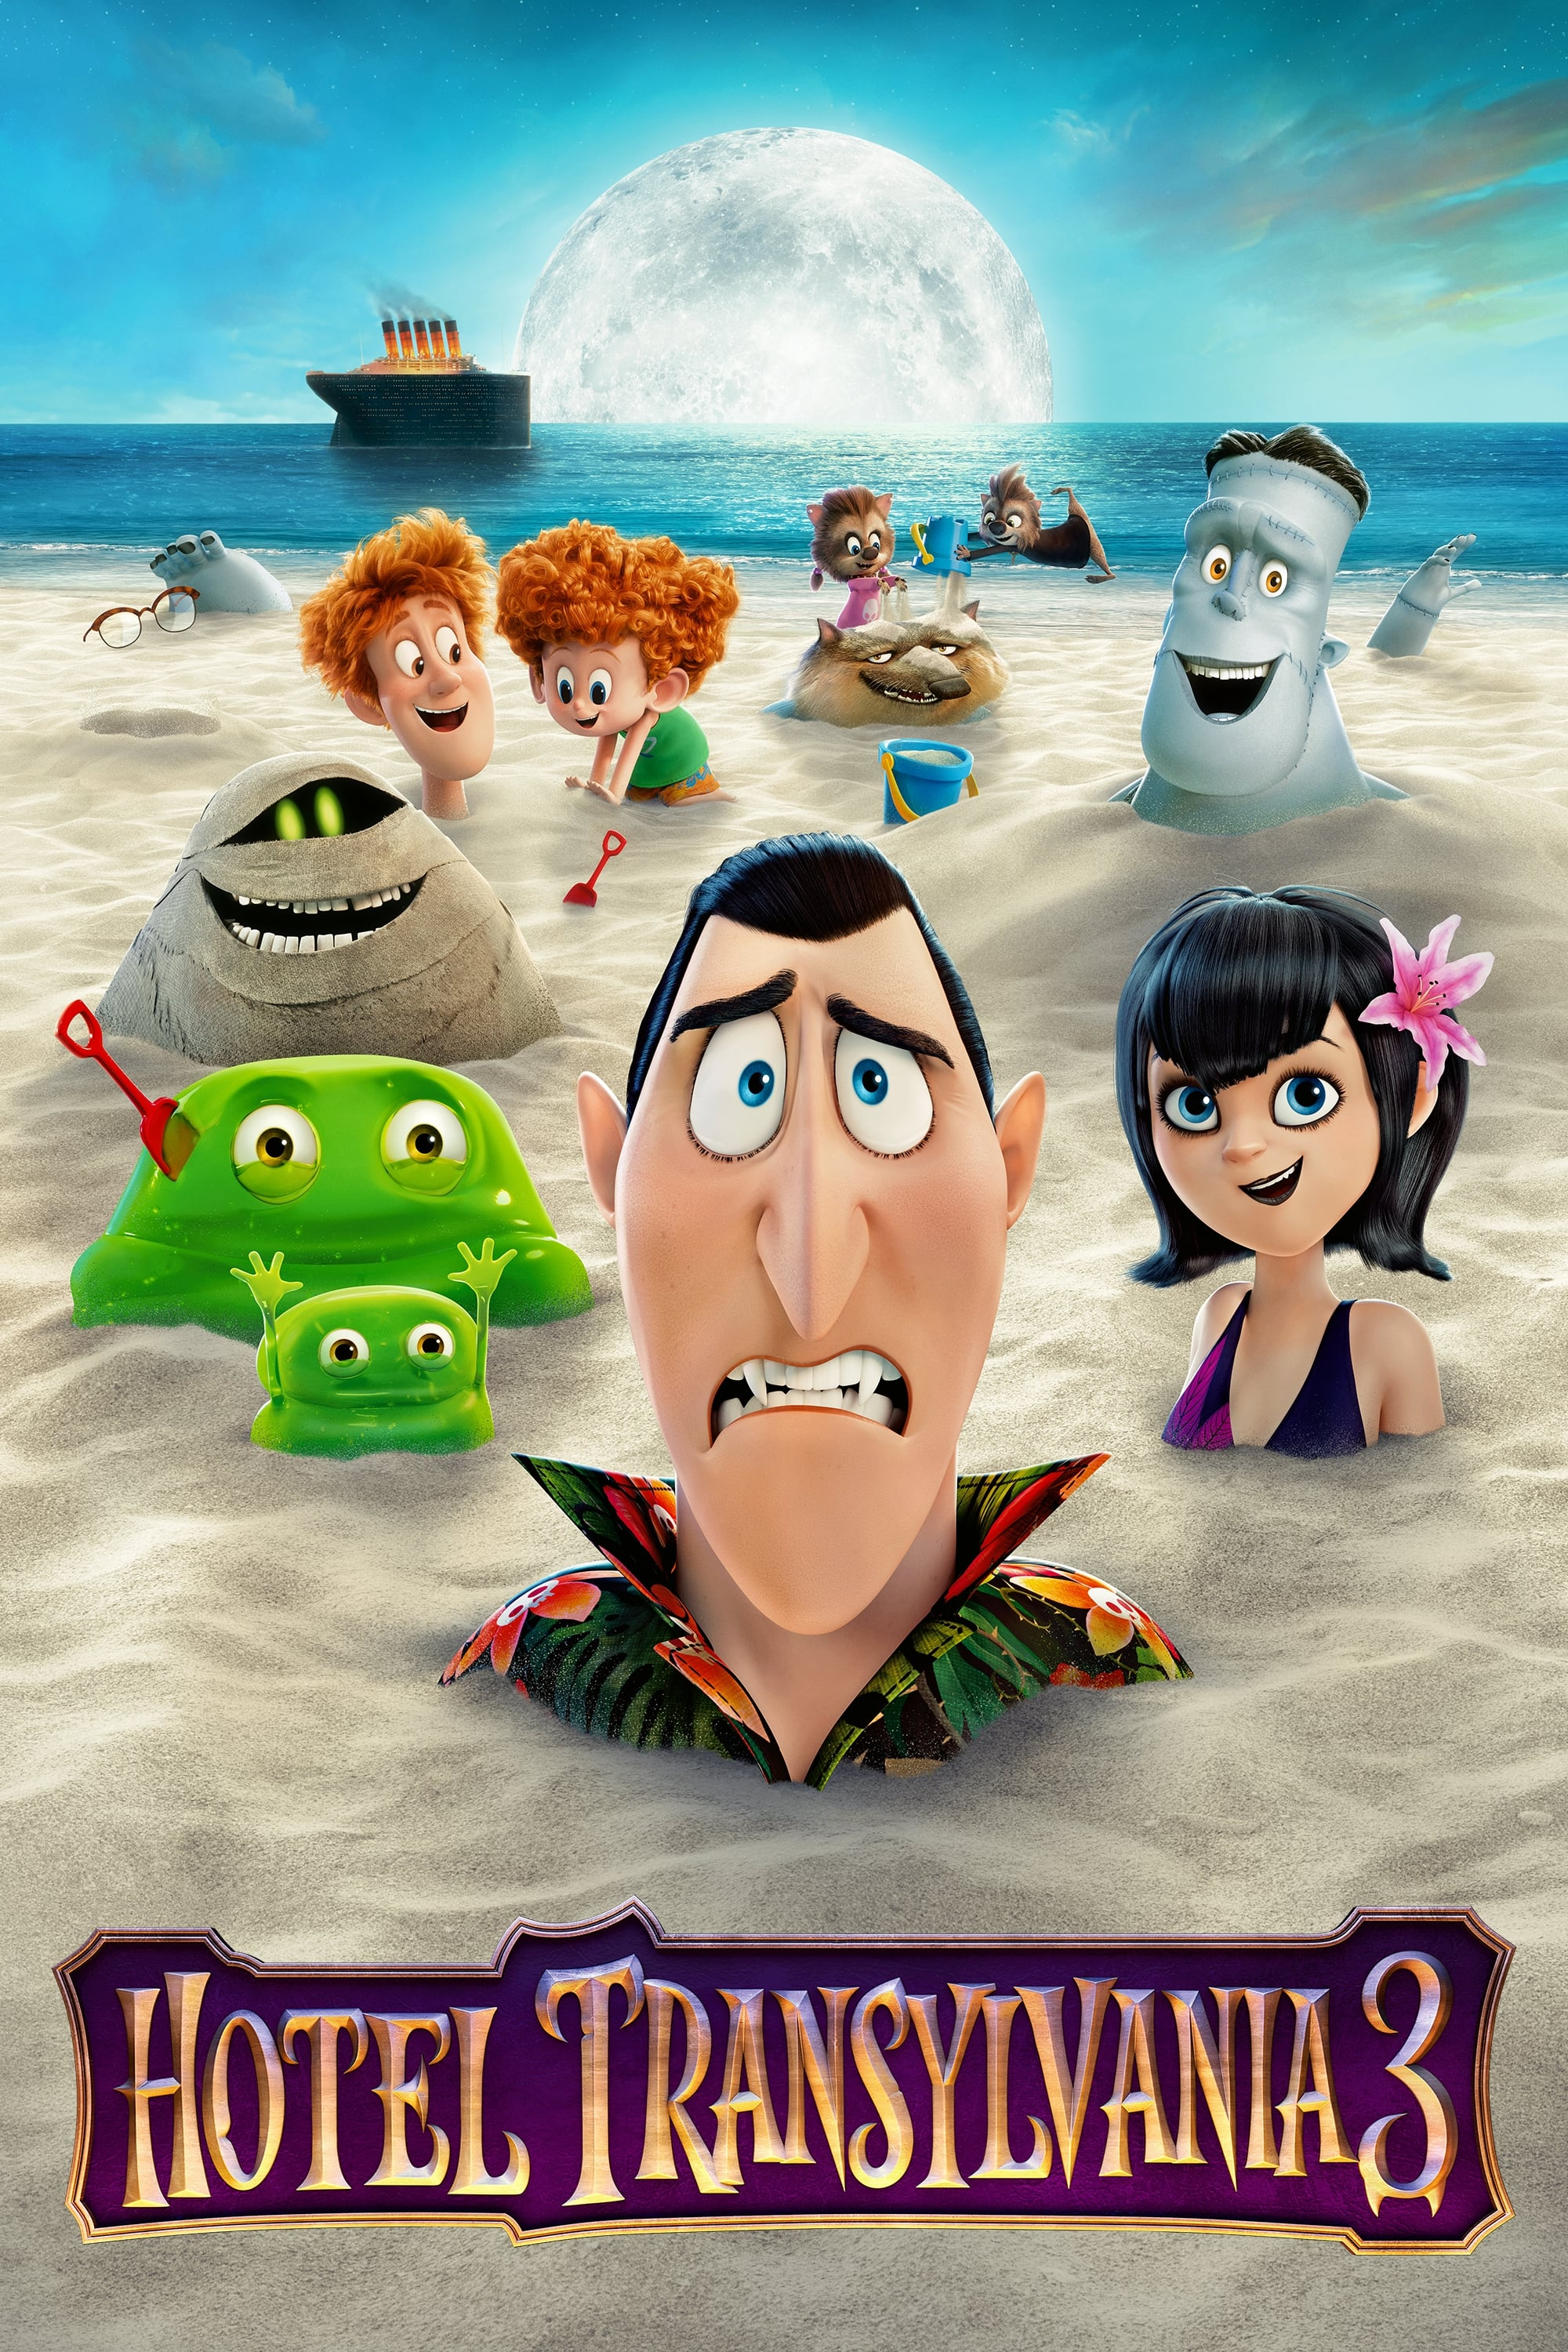 image for Hotel Transylvania 3: Summer Vacation